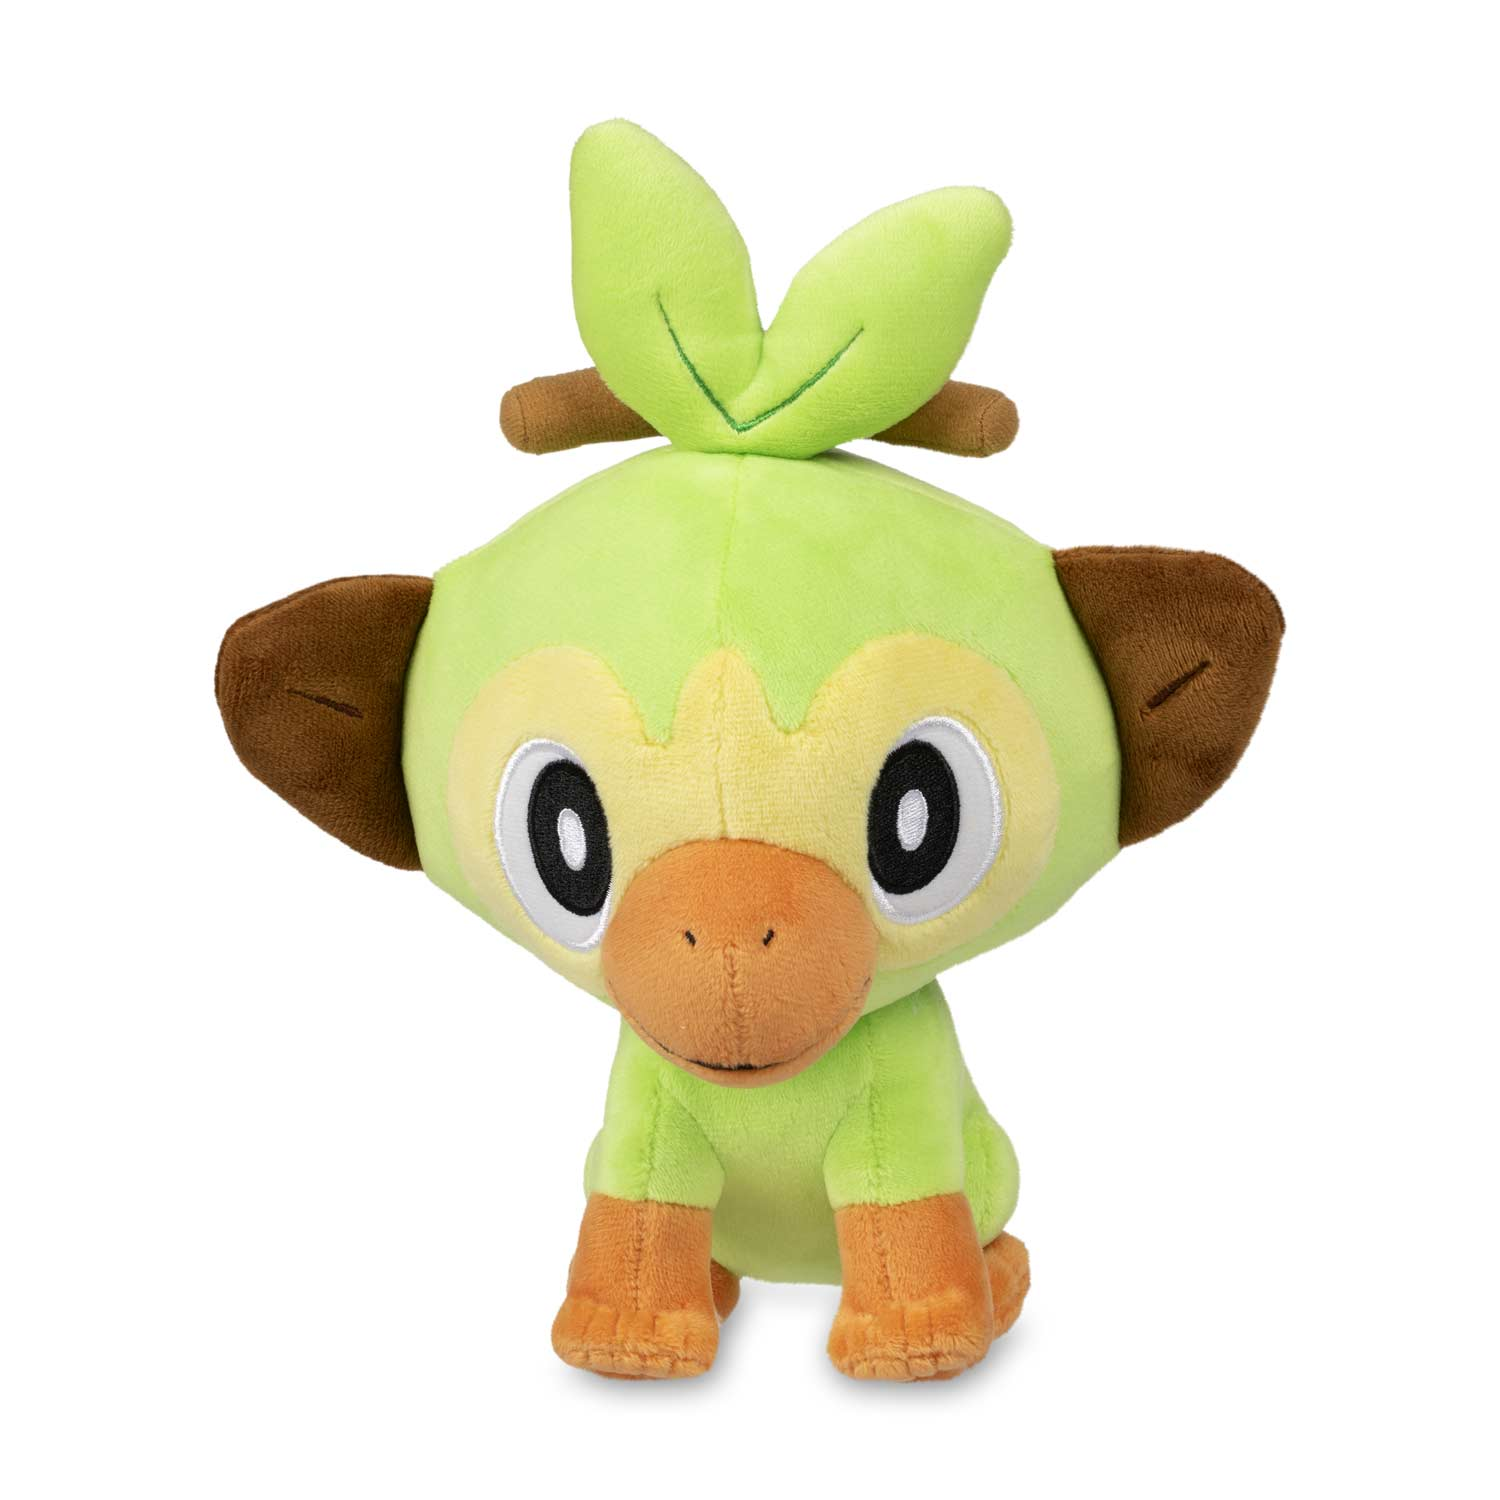 Grooky Plush / Groovy groupby on multiple properties and extracting only value.